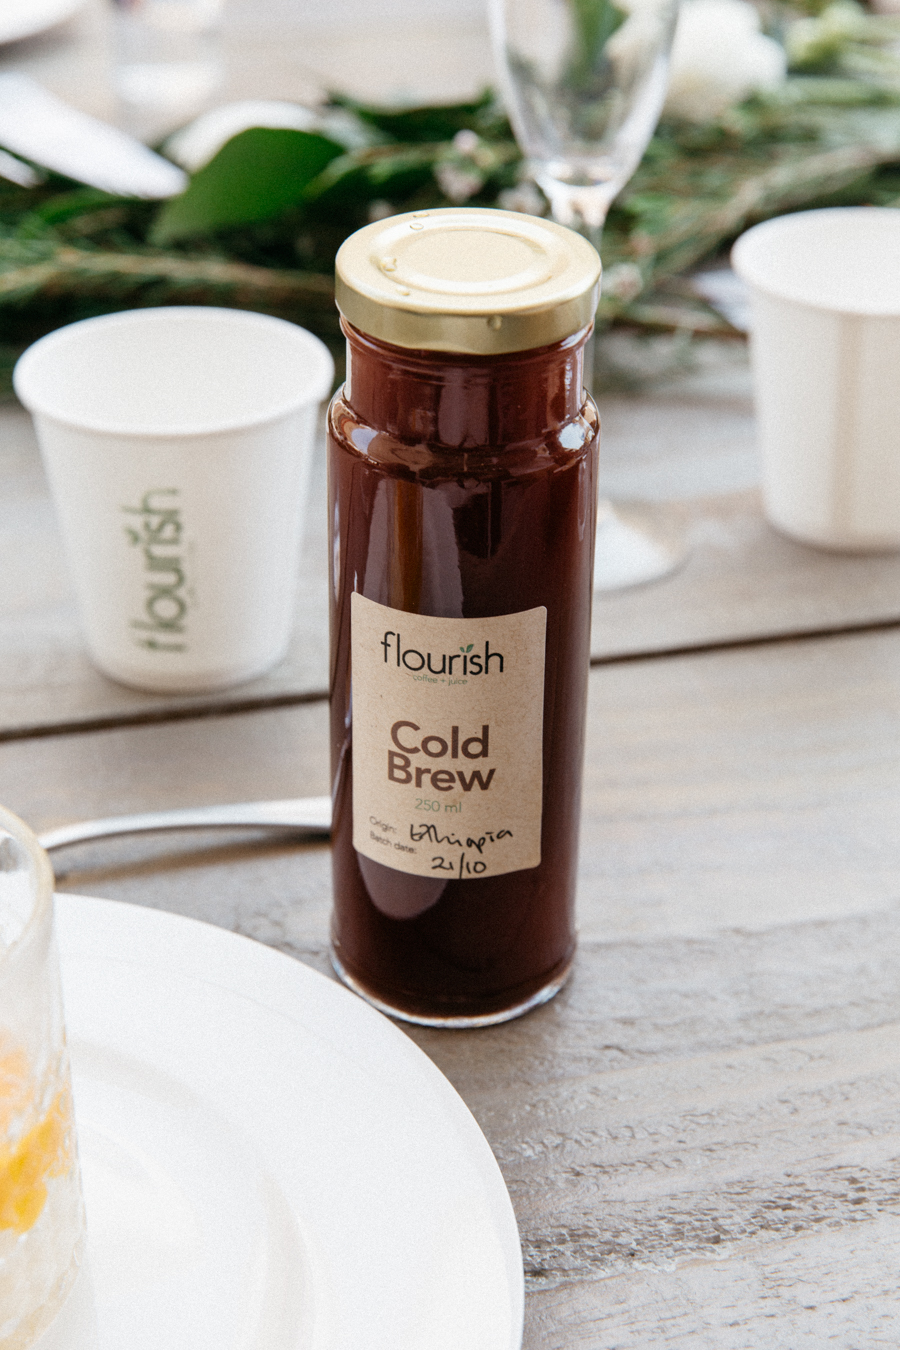 Flourish cafe, Ethiopian cold brew coffee.